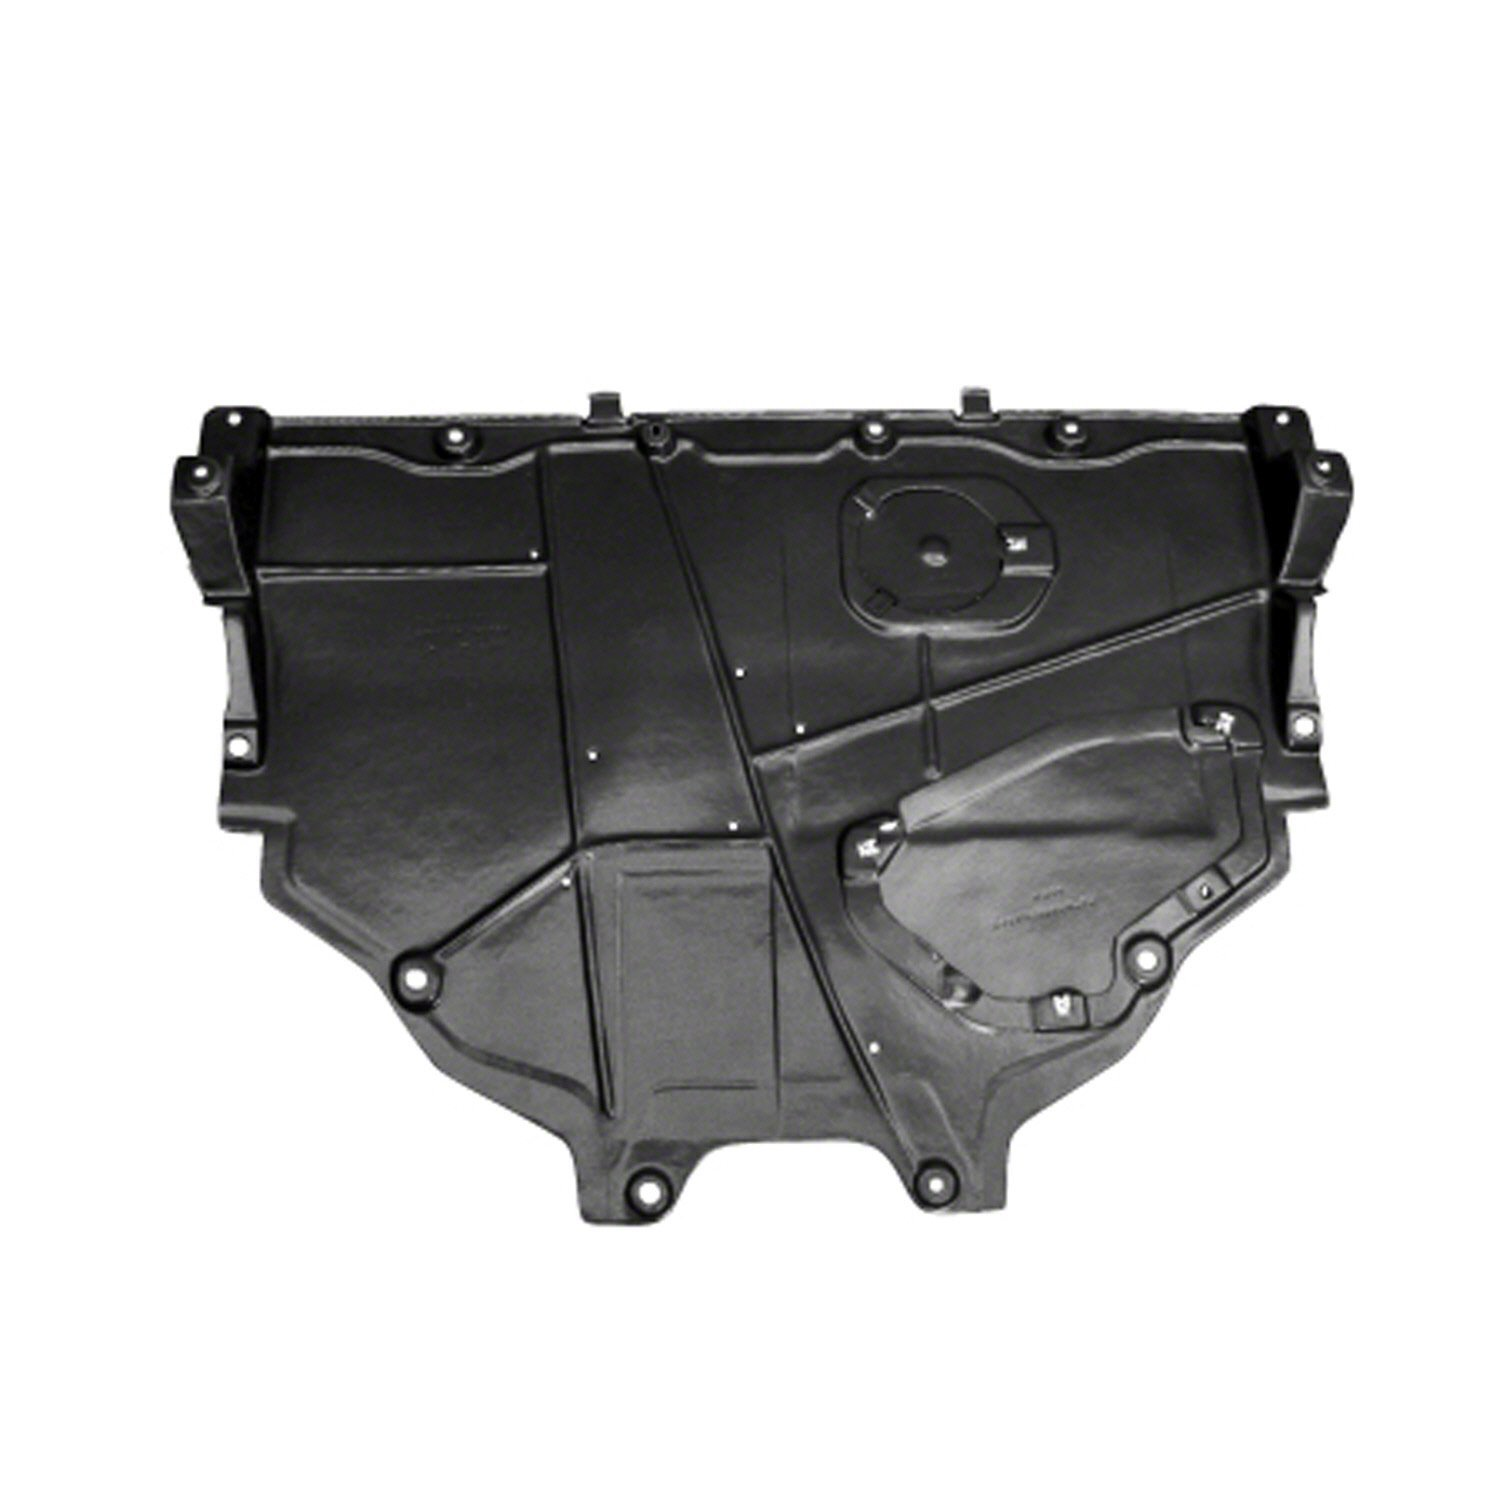 Crash Parts Plus MA1228122 Front Engine Cover for 2014-2016 Mazda 3, 3 Sport, 6